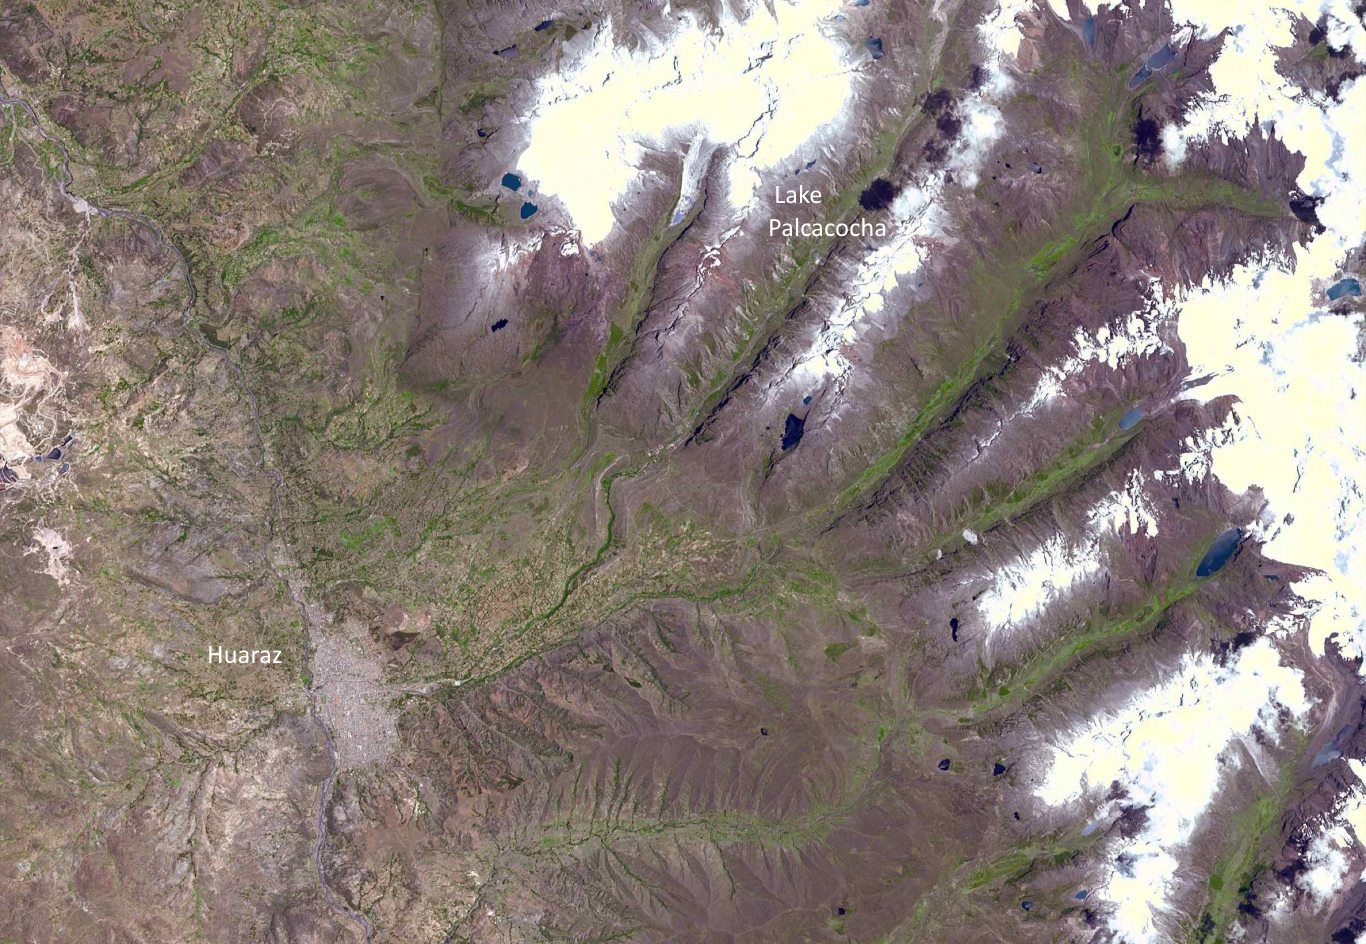 Climate change in Peru: Glacial melt